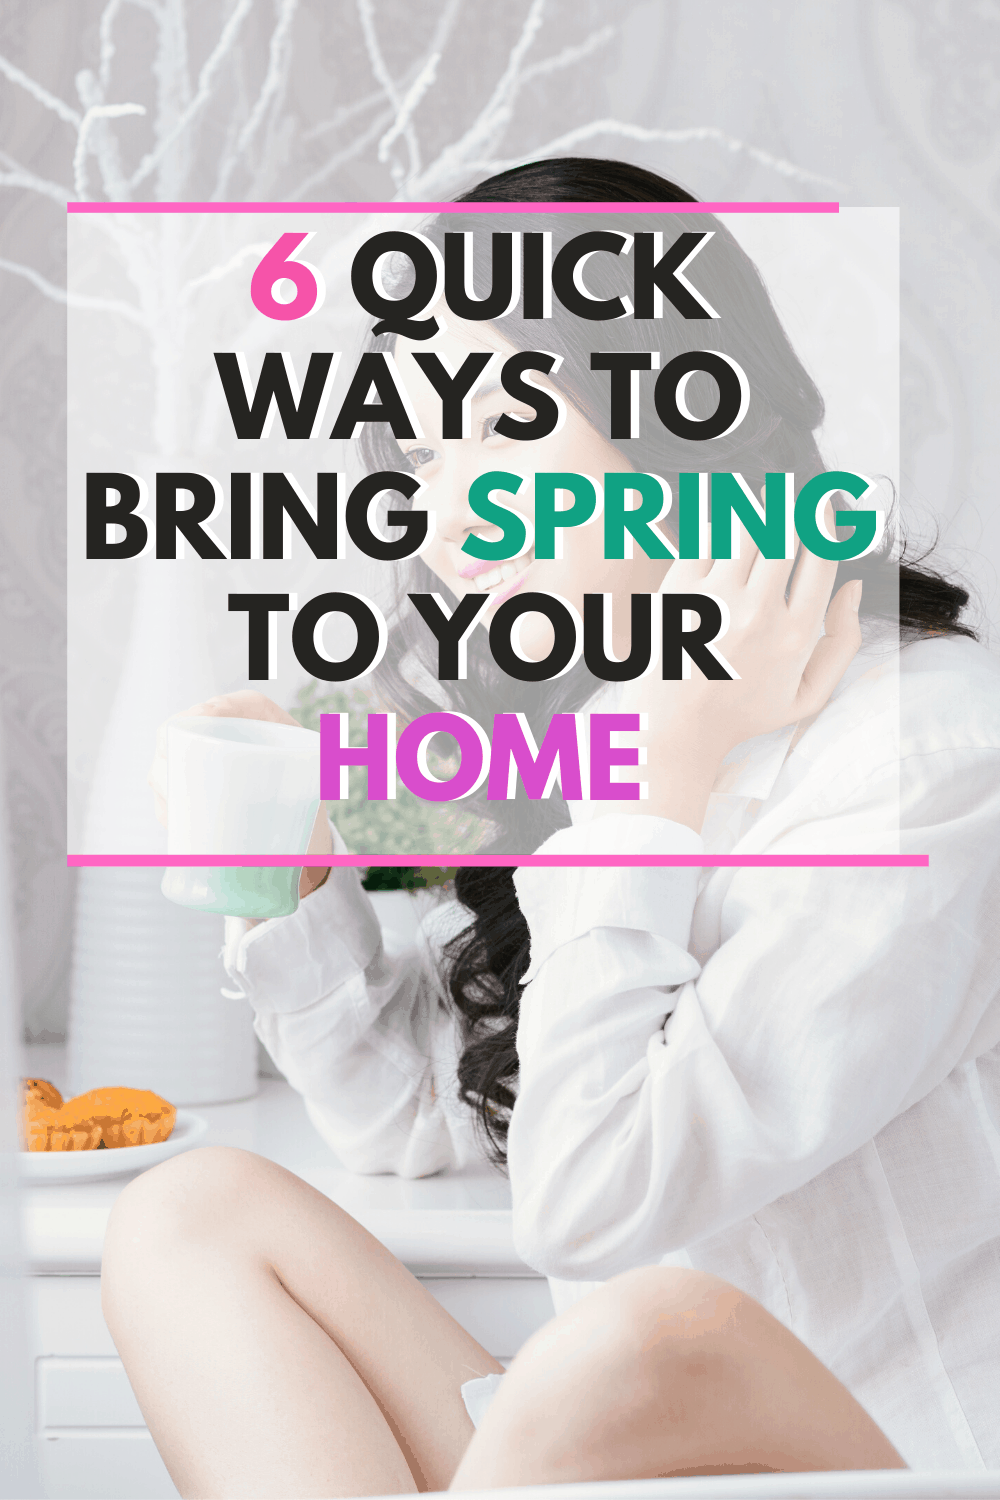 There are 6 quick ways to bring spring to your home and it doesn't have to bust your budget! Get ready to enjoy a touch of Spring in your home this season. #springcleaning #cleanyourhome #springdecoration via @mystayathome